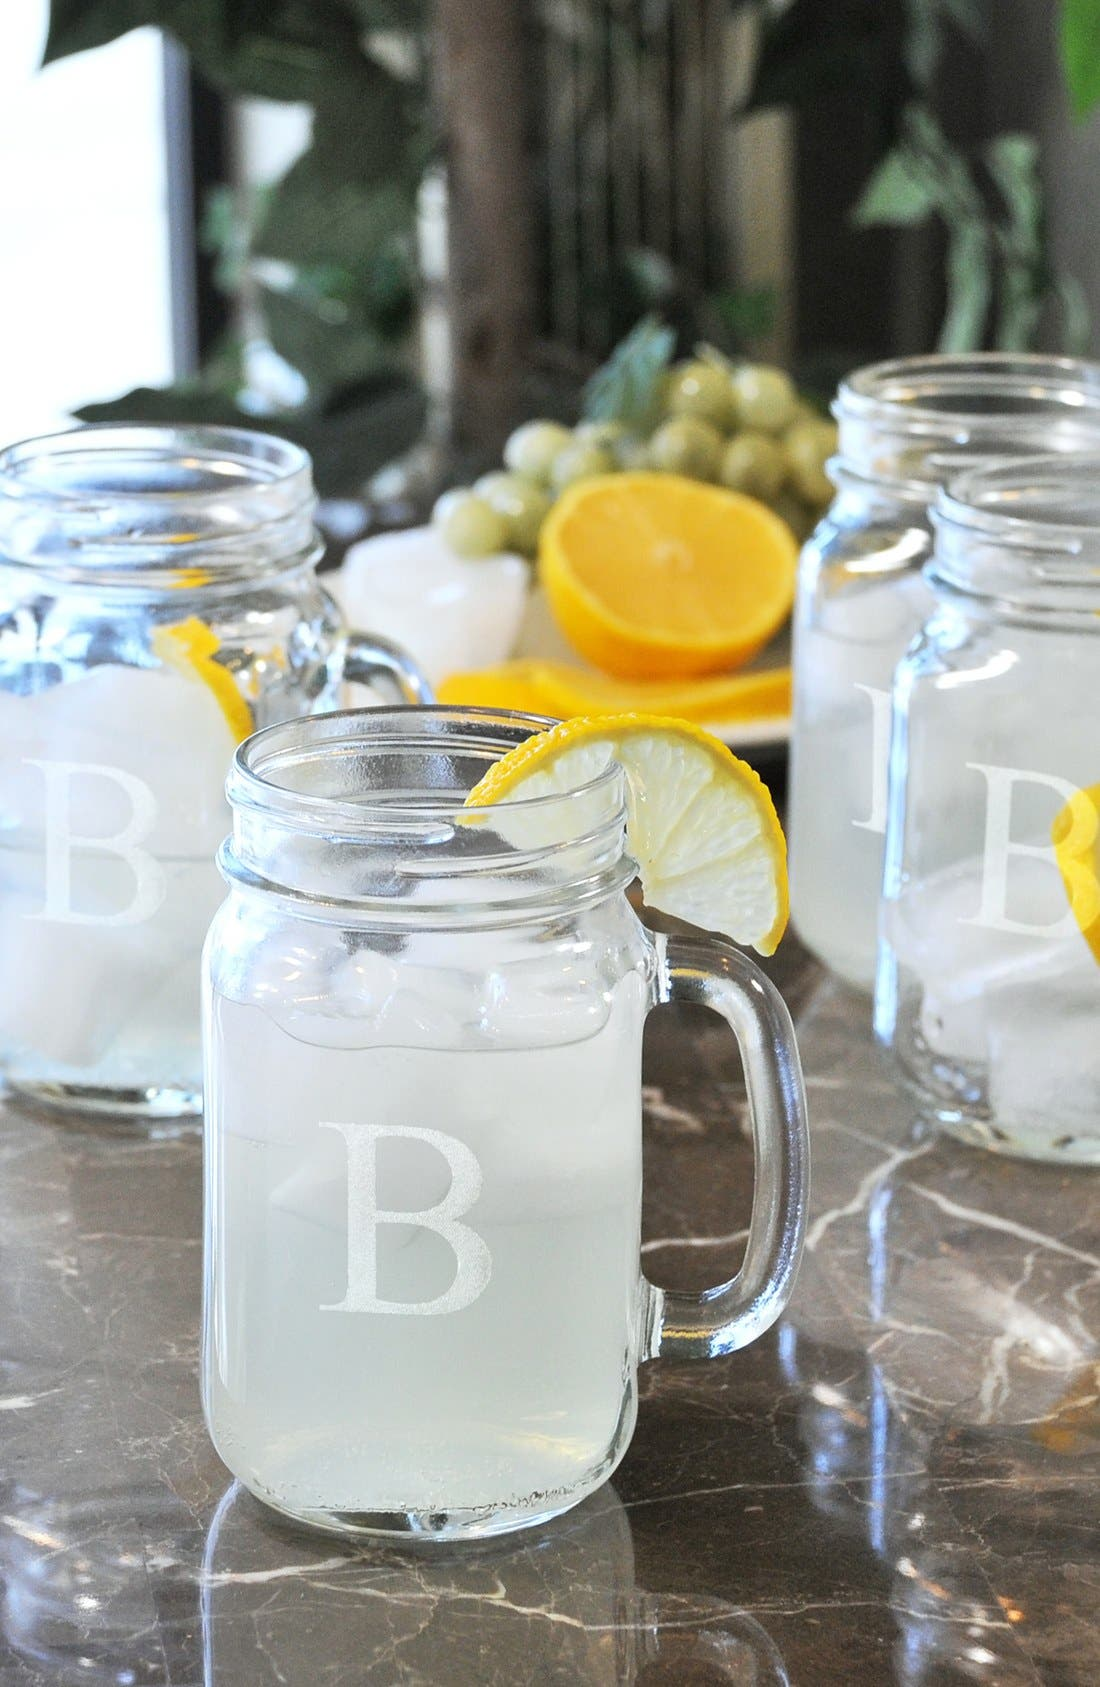 CATHY'S CONCEPTS Monogram Glass Drinking Jars